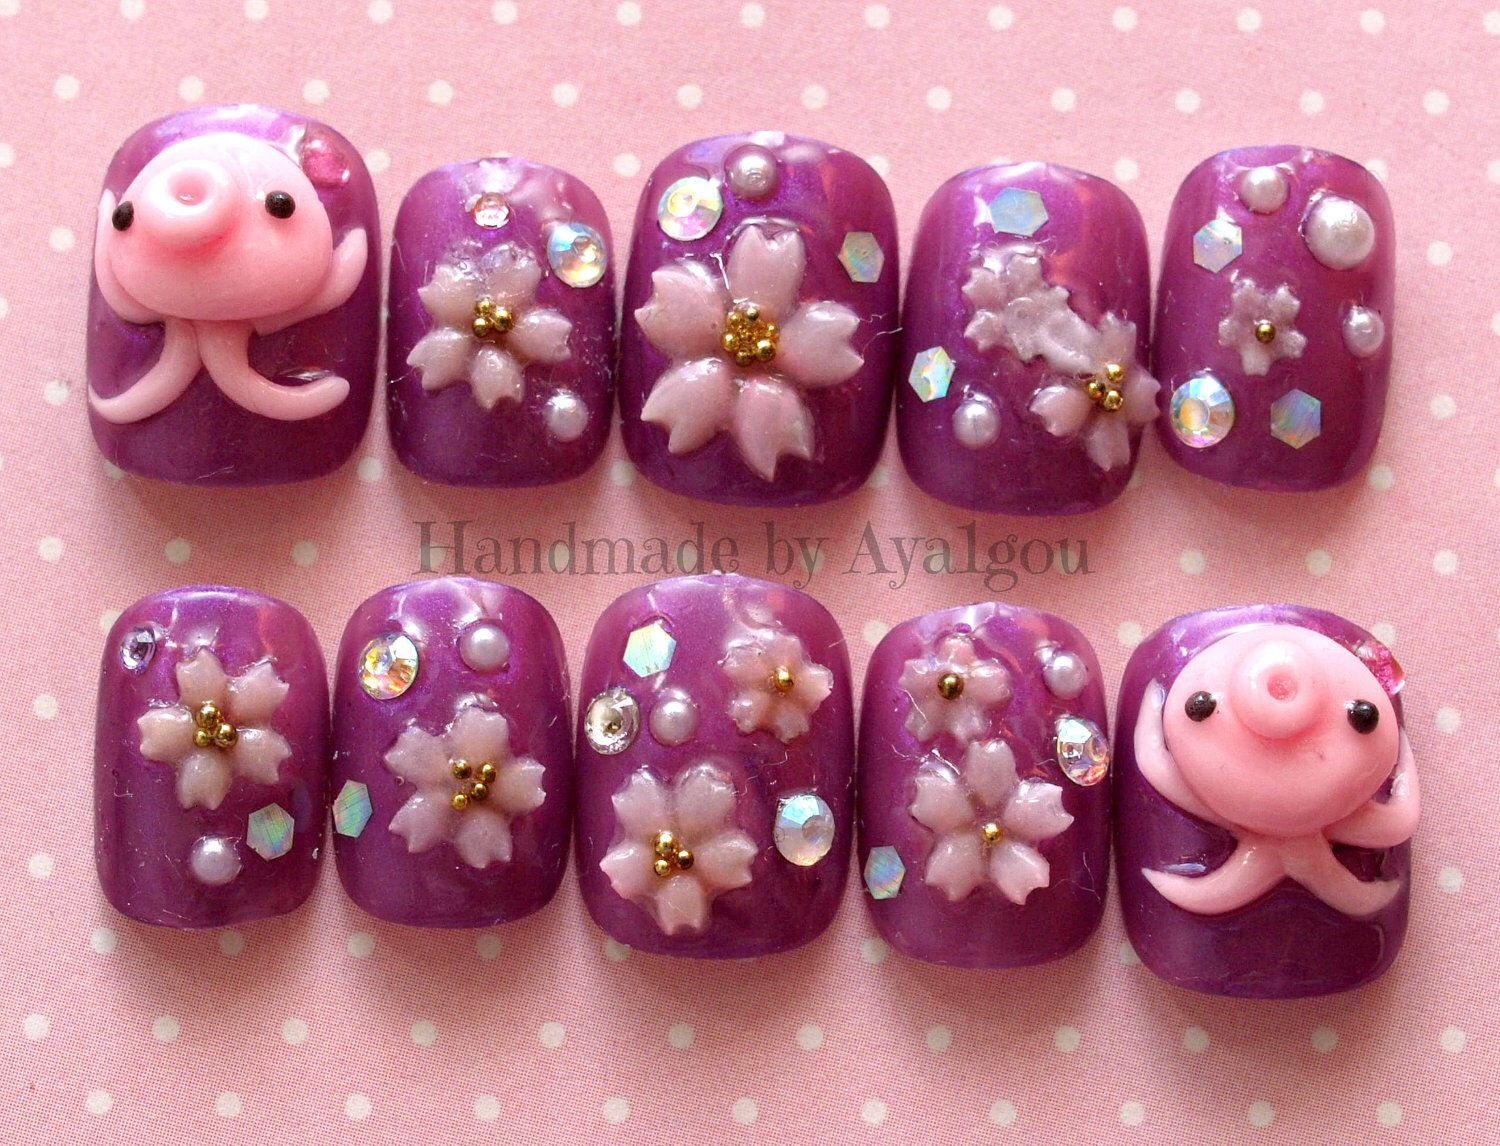 Nails, octopus, squid, 3D nails, short nail, sakura, cherry blossom ...